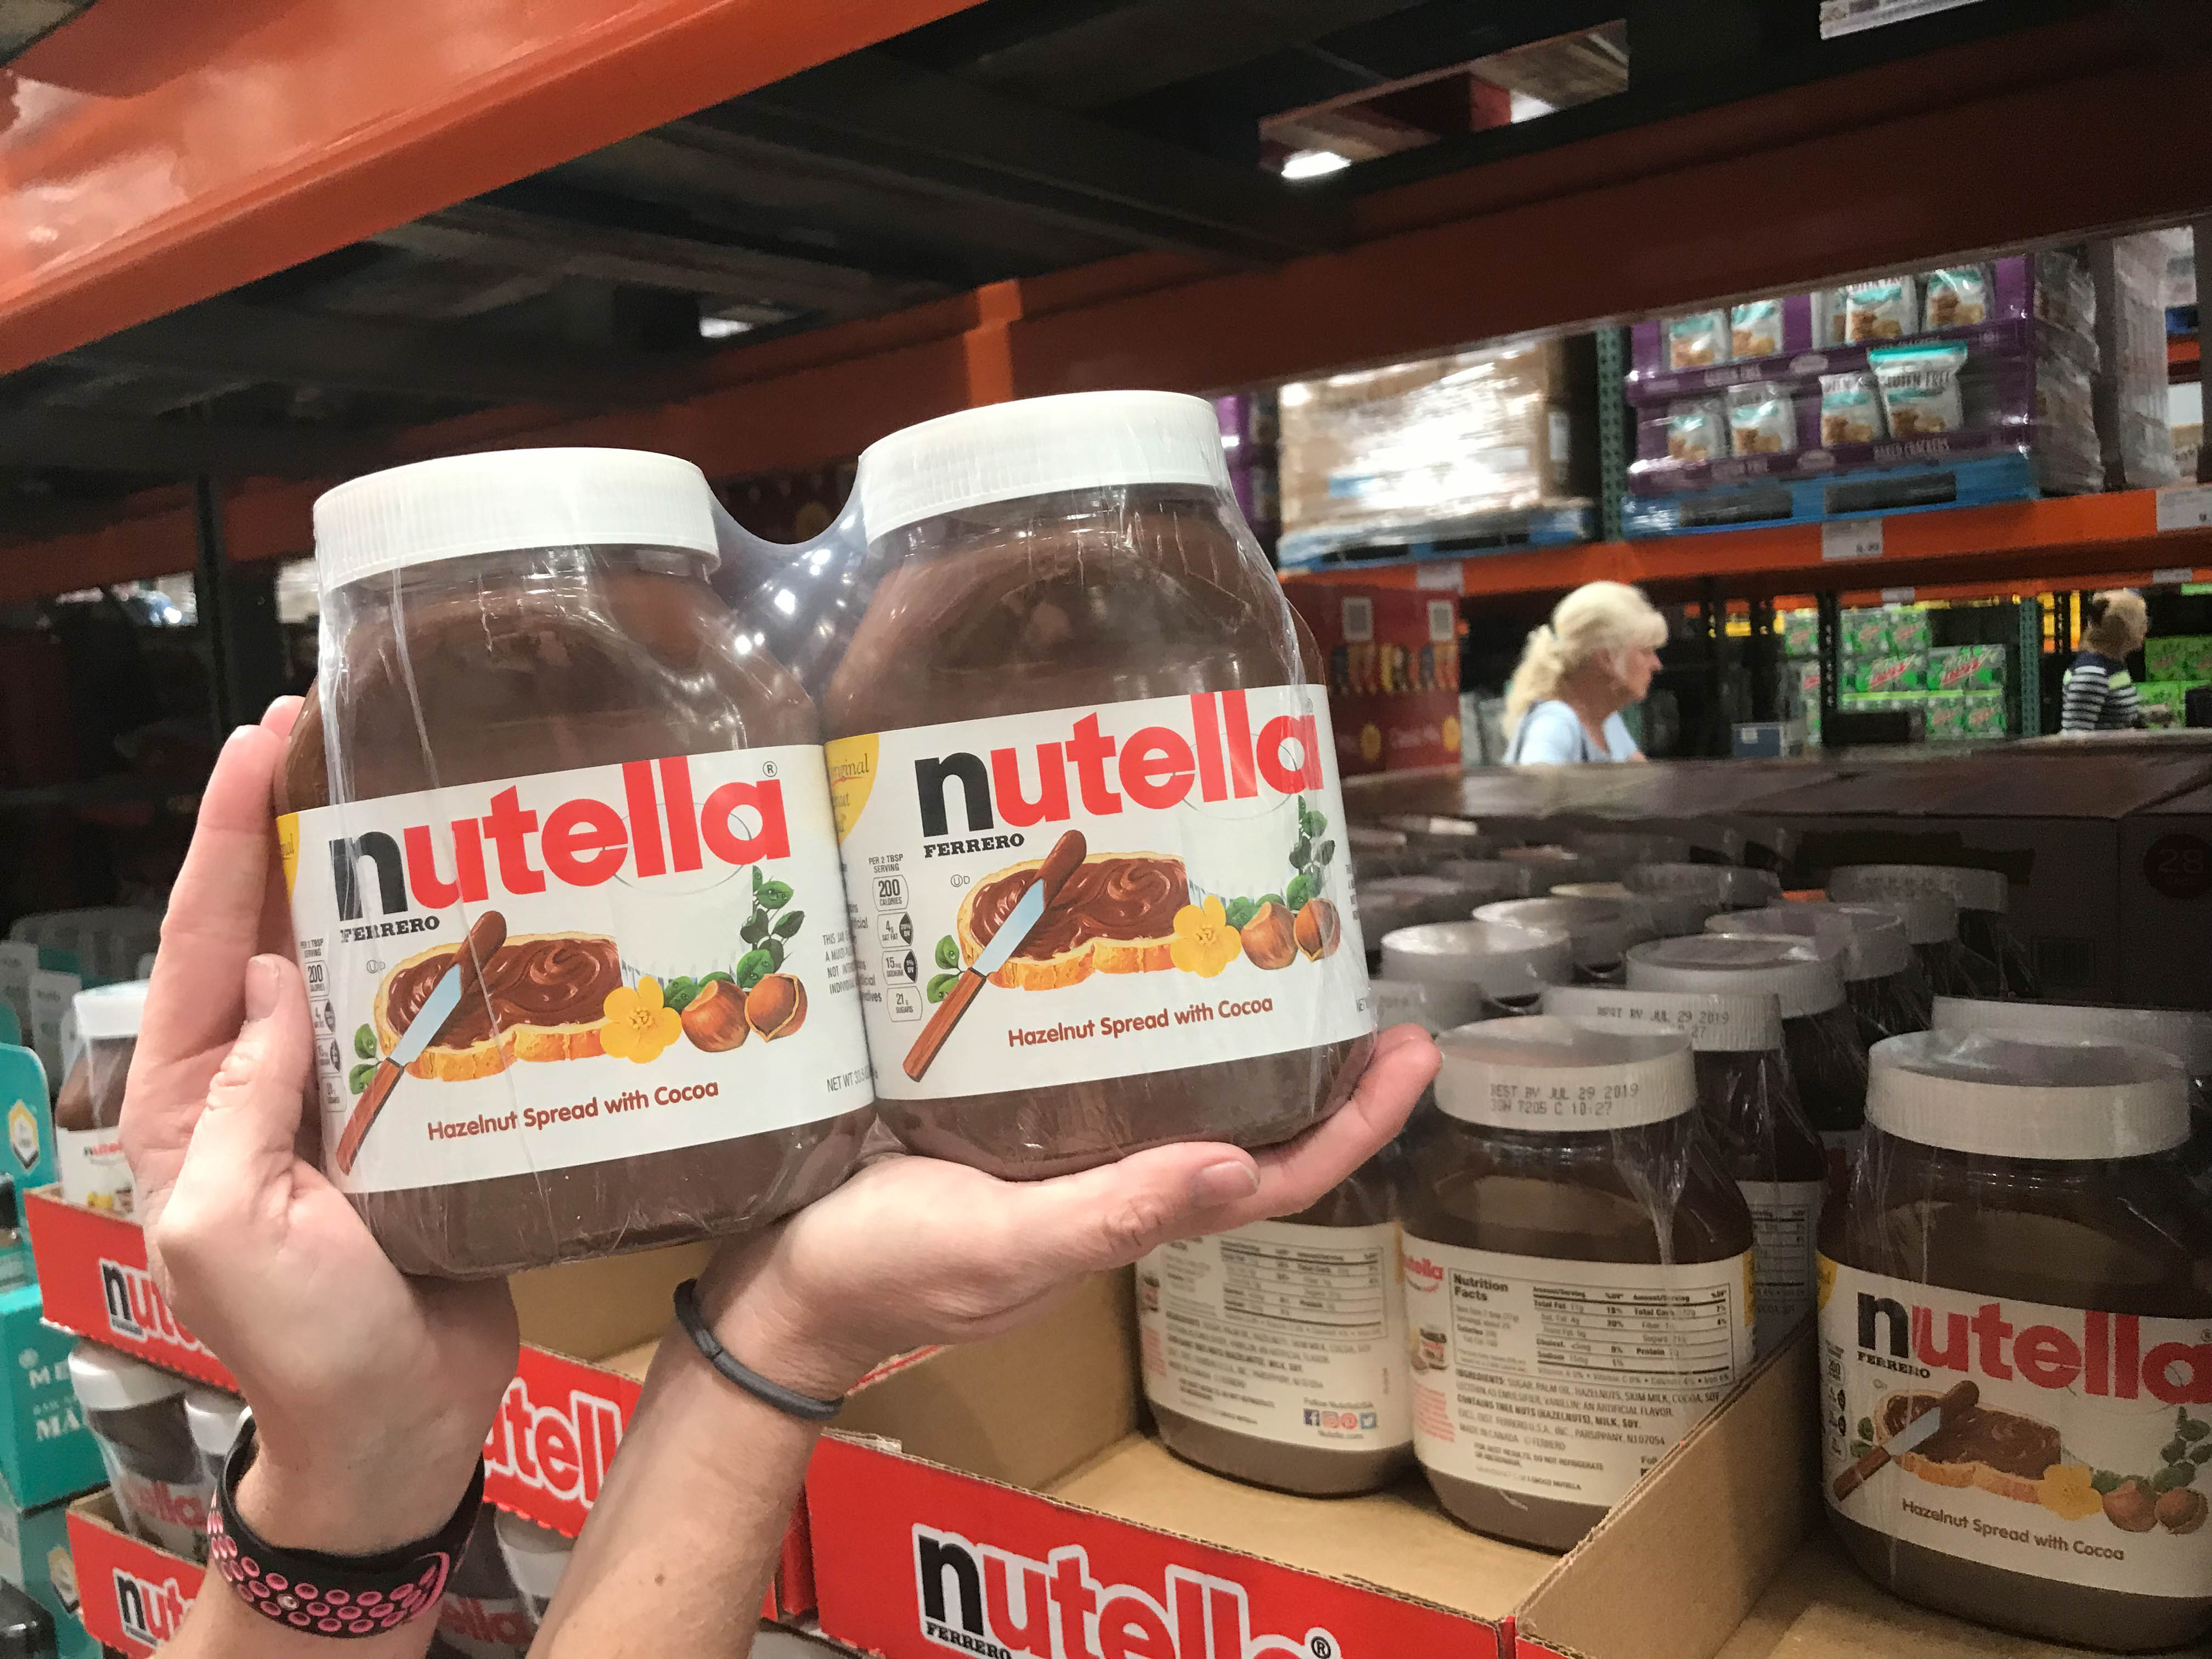 Best And Less Stores Melbourne 19 Unbeatable Deals You Can Only Find At Costco The Krazy Coupon